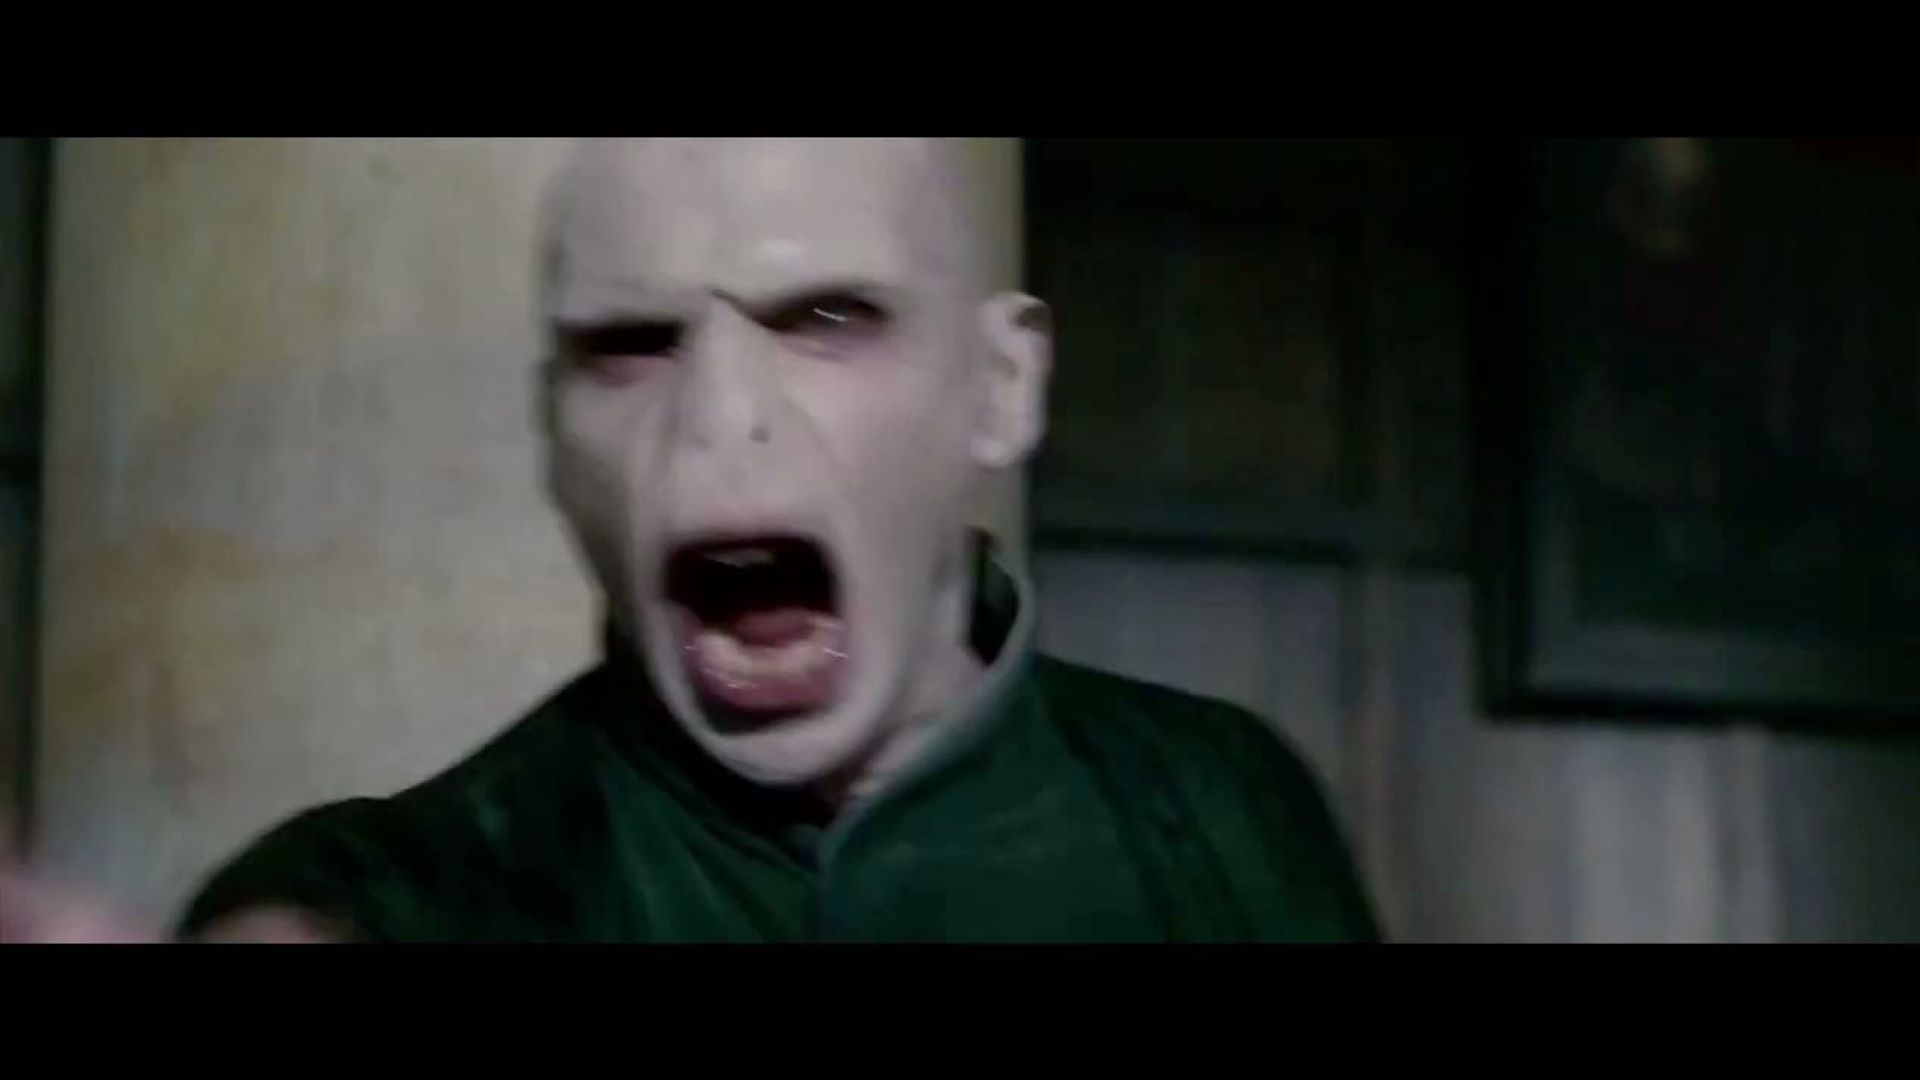 Extended Harry Potter and the Deathly Hallows Part 2